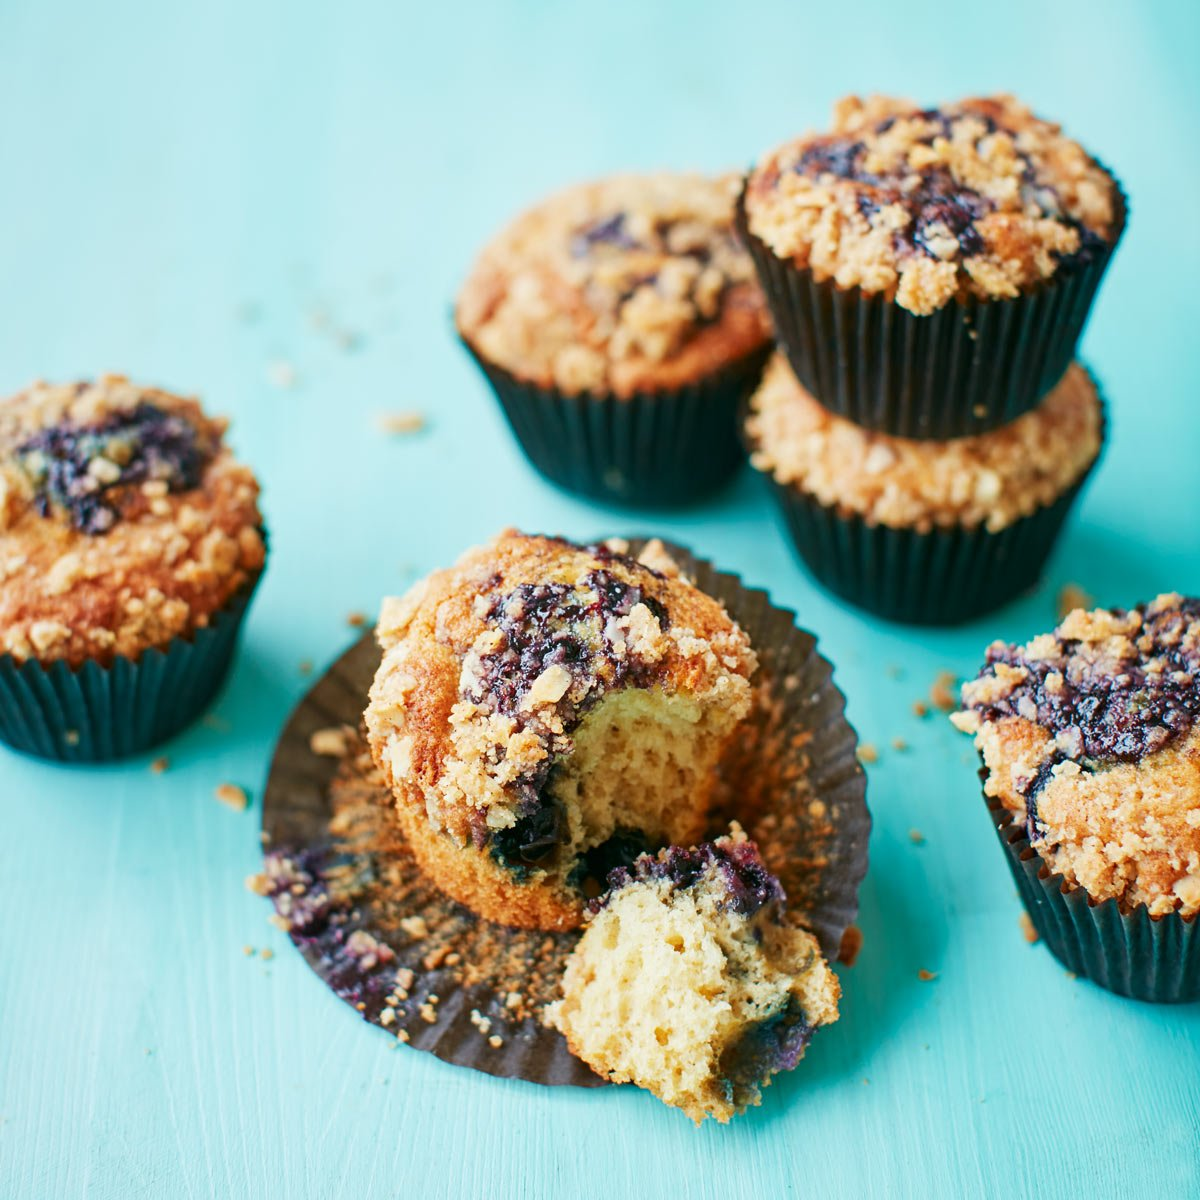 Super easy muffin recipes that anyone can make... https://t.co/G8XdoaG4JP https://t.co/qeQksJKnPc